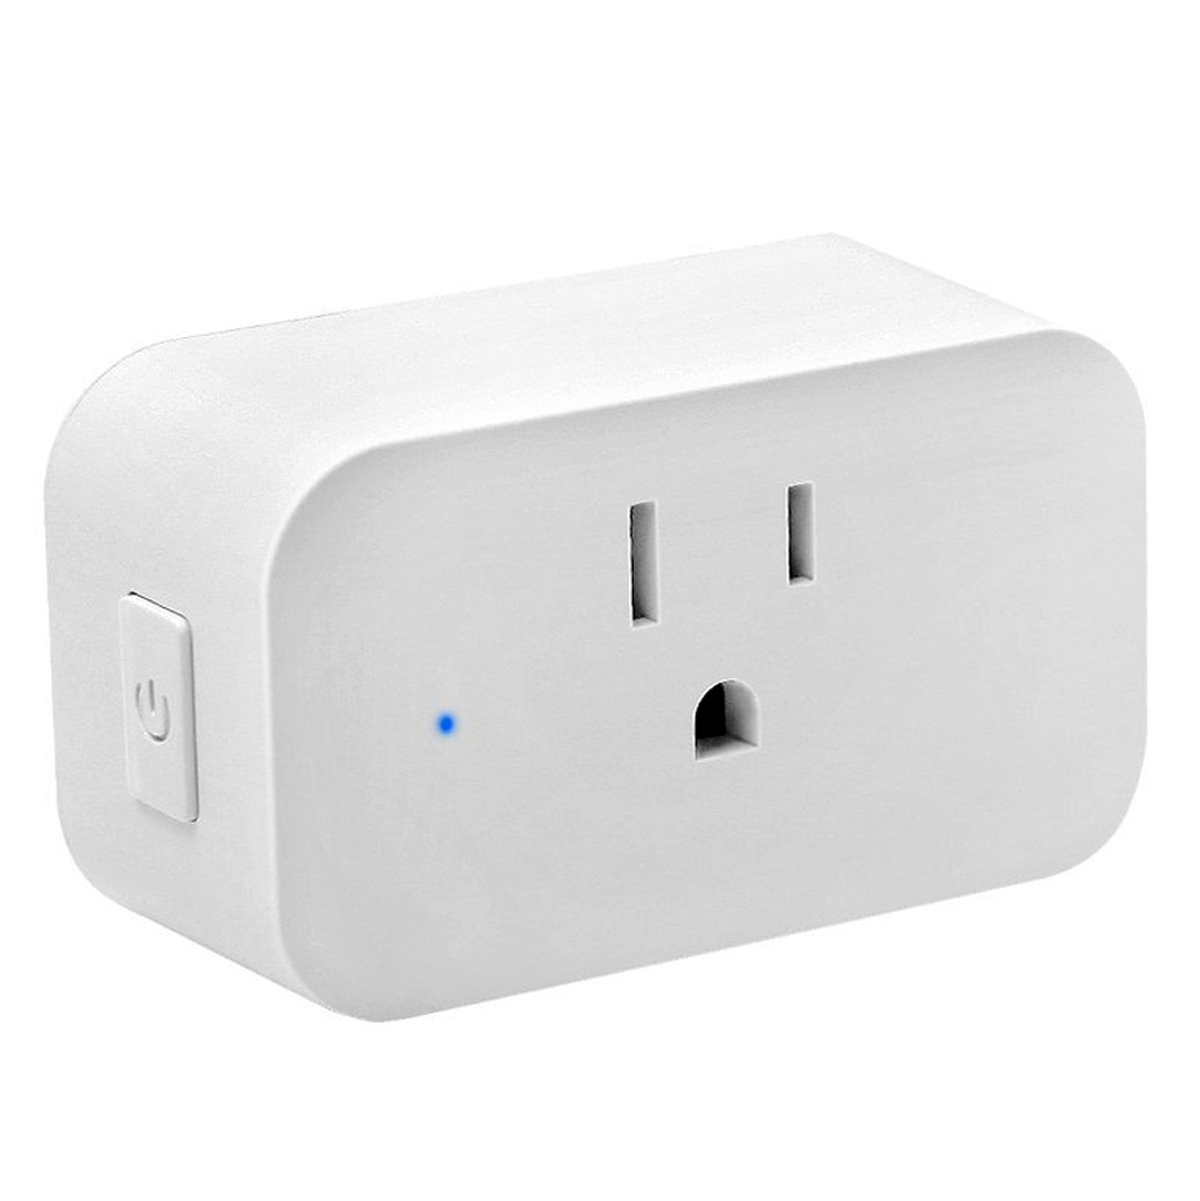 Wifi Outlet - Atuten Wireless Smart Plug with Timing Function, No Hub Required, Mini Smart Socket Compatible with Alexa and Google Home - Control Your Devices from Anywhere, 15A, White (1Pack)